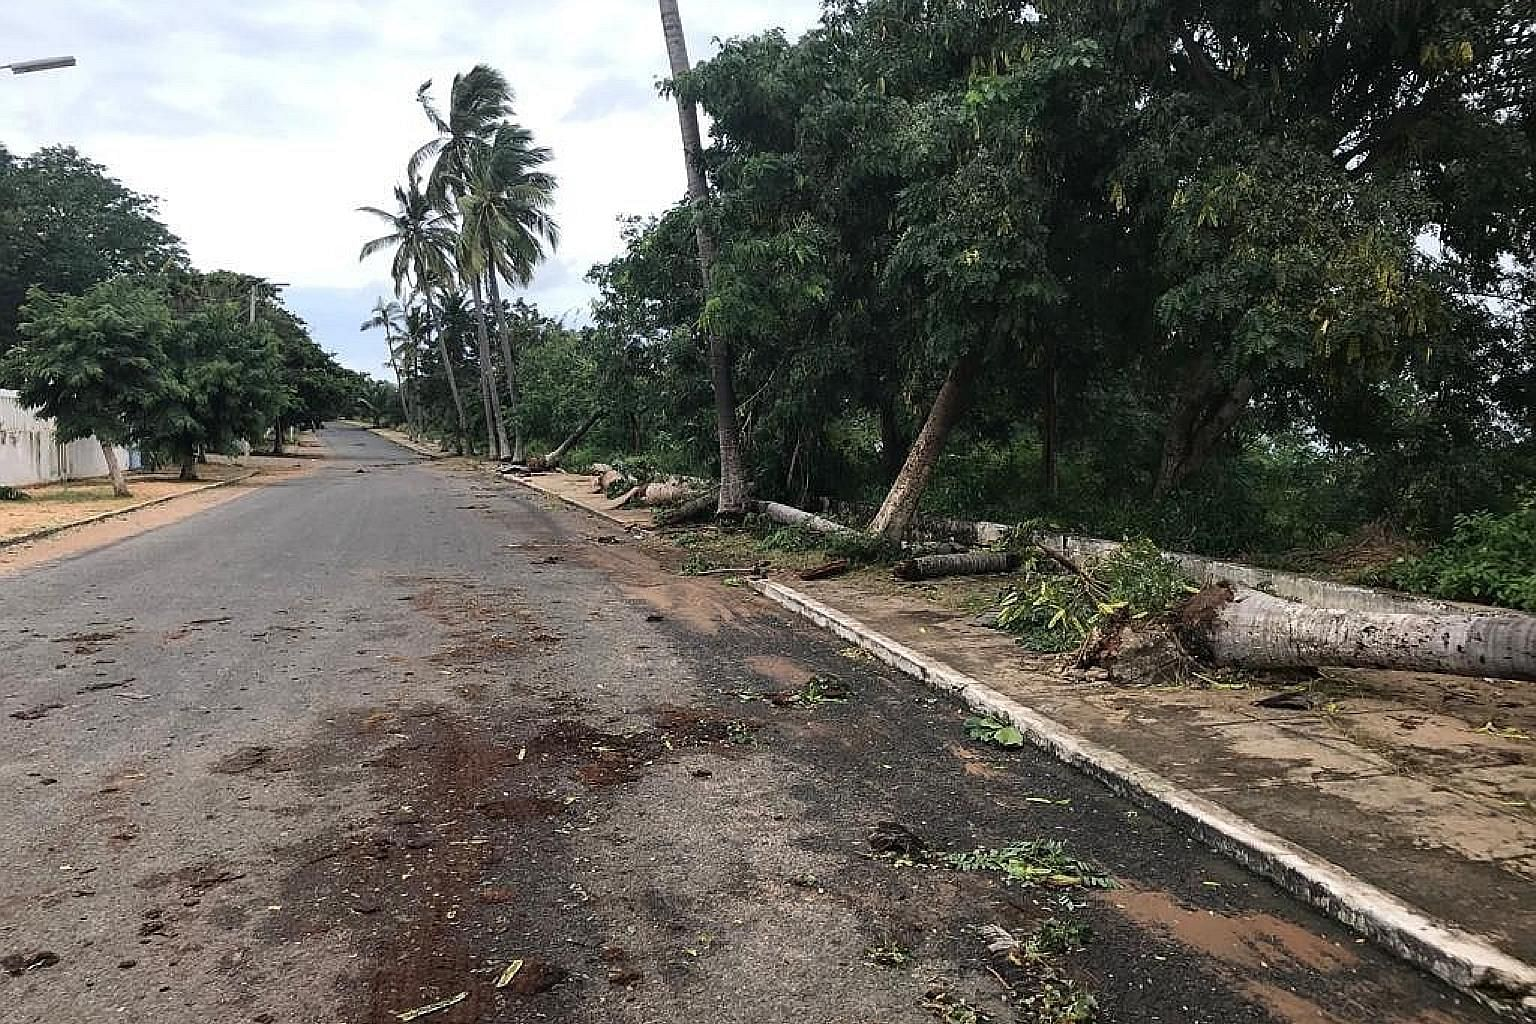 Damaged trees in Pemba city in Cabo Delgado province in the southern African nation of Mozambique yesterday after Cyclone Kenneth struck. The authorities have said there are concerns that five rivers as well as coastal waterways could overflow. Aroun